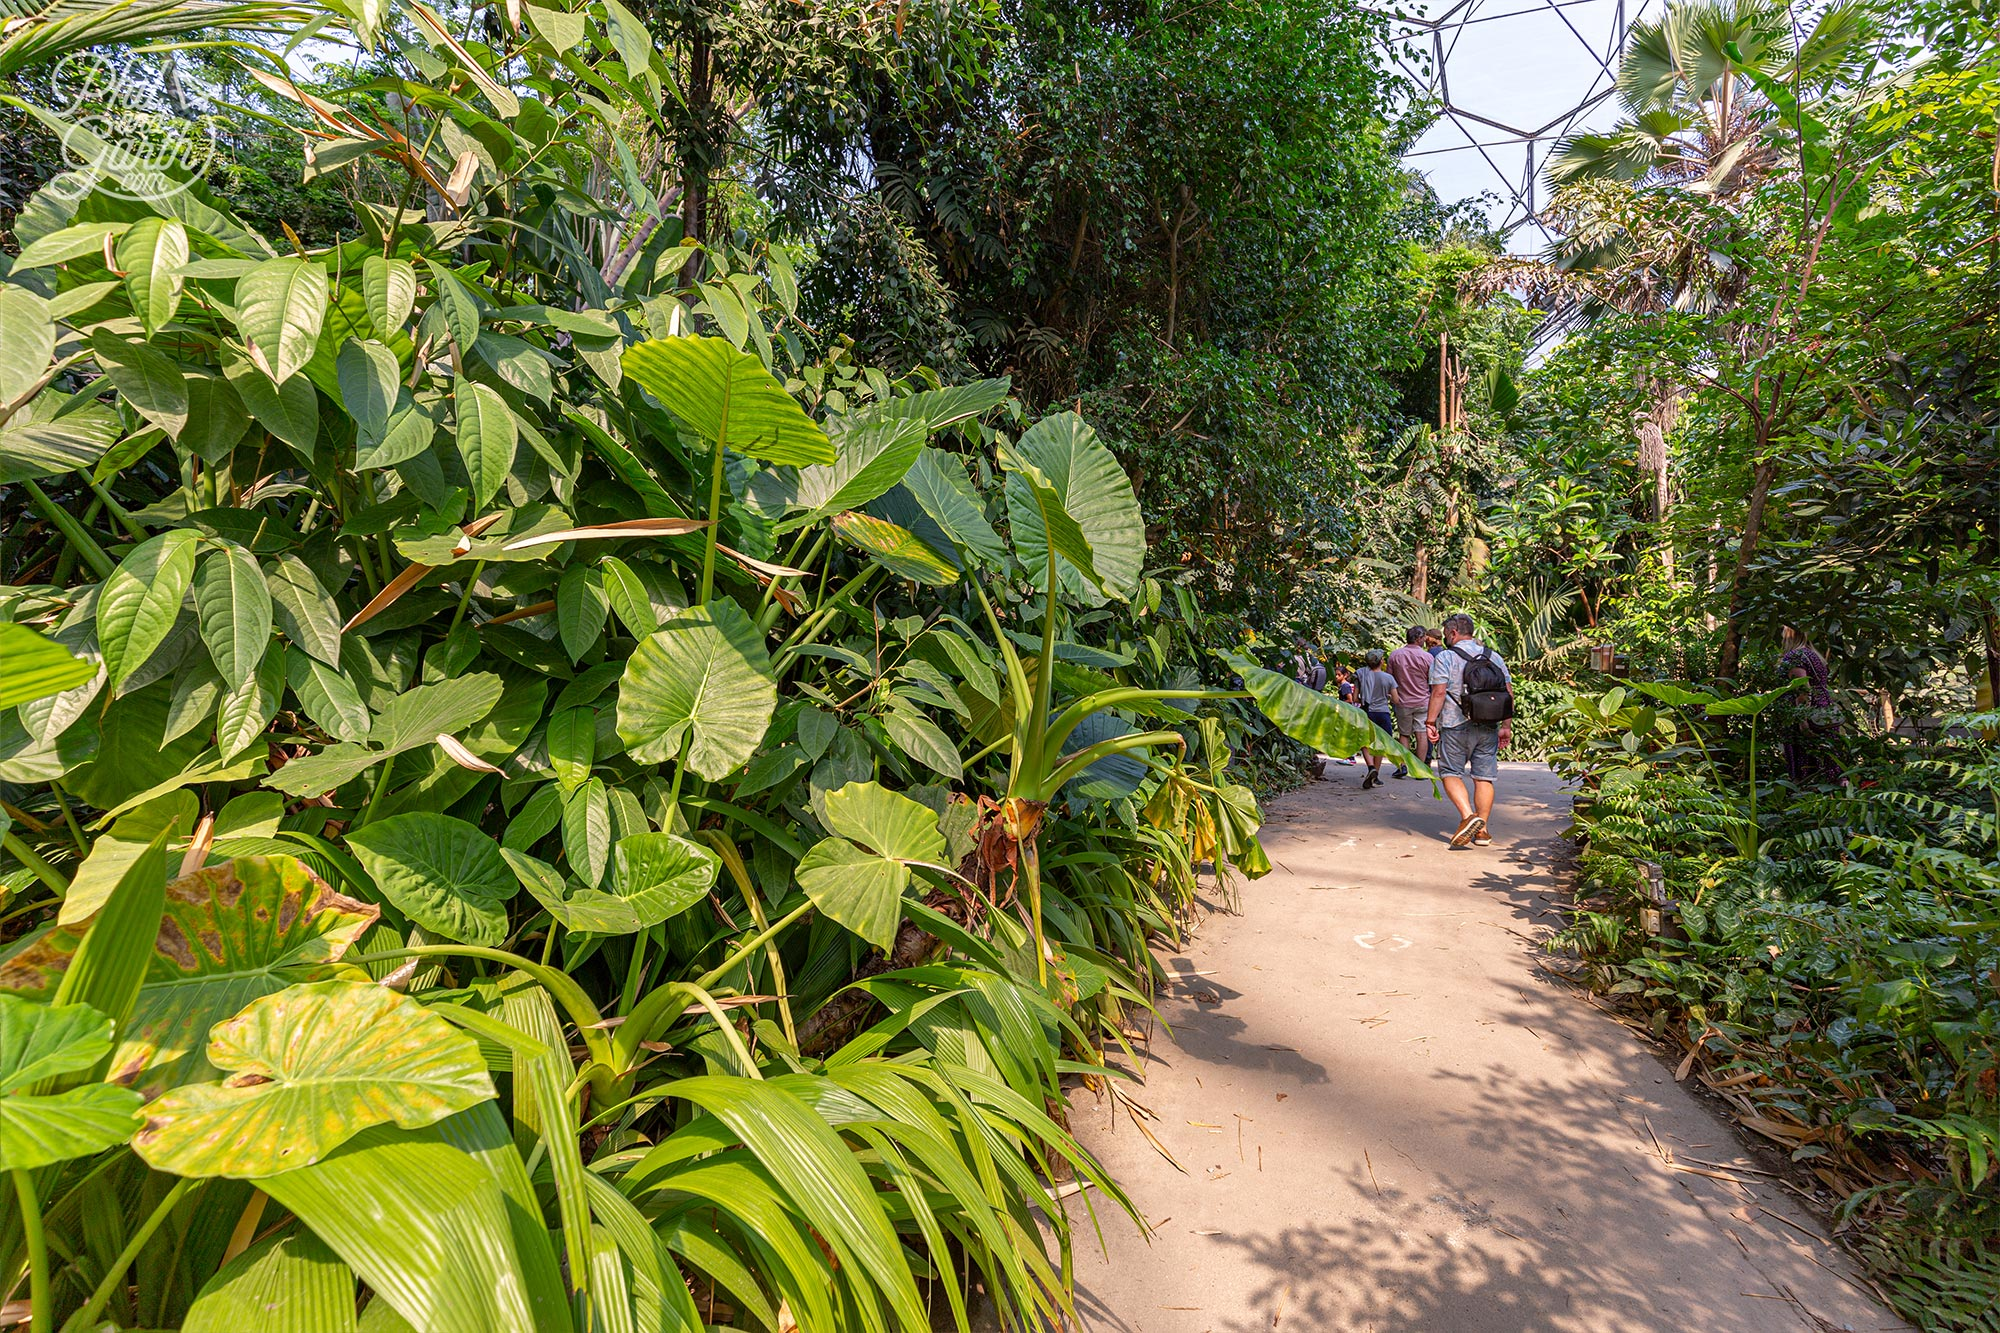 The path guides visitors through all the attractions of the rainforest biome